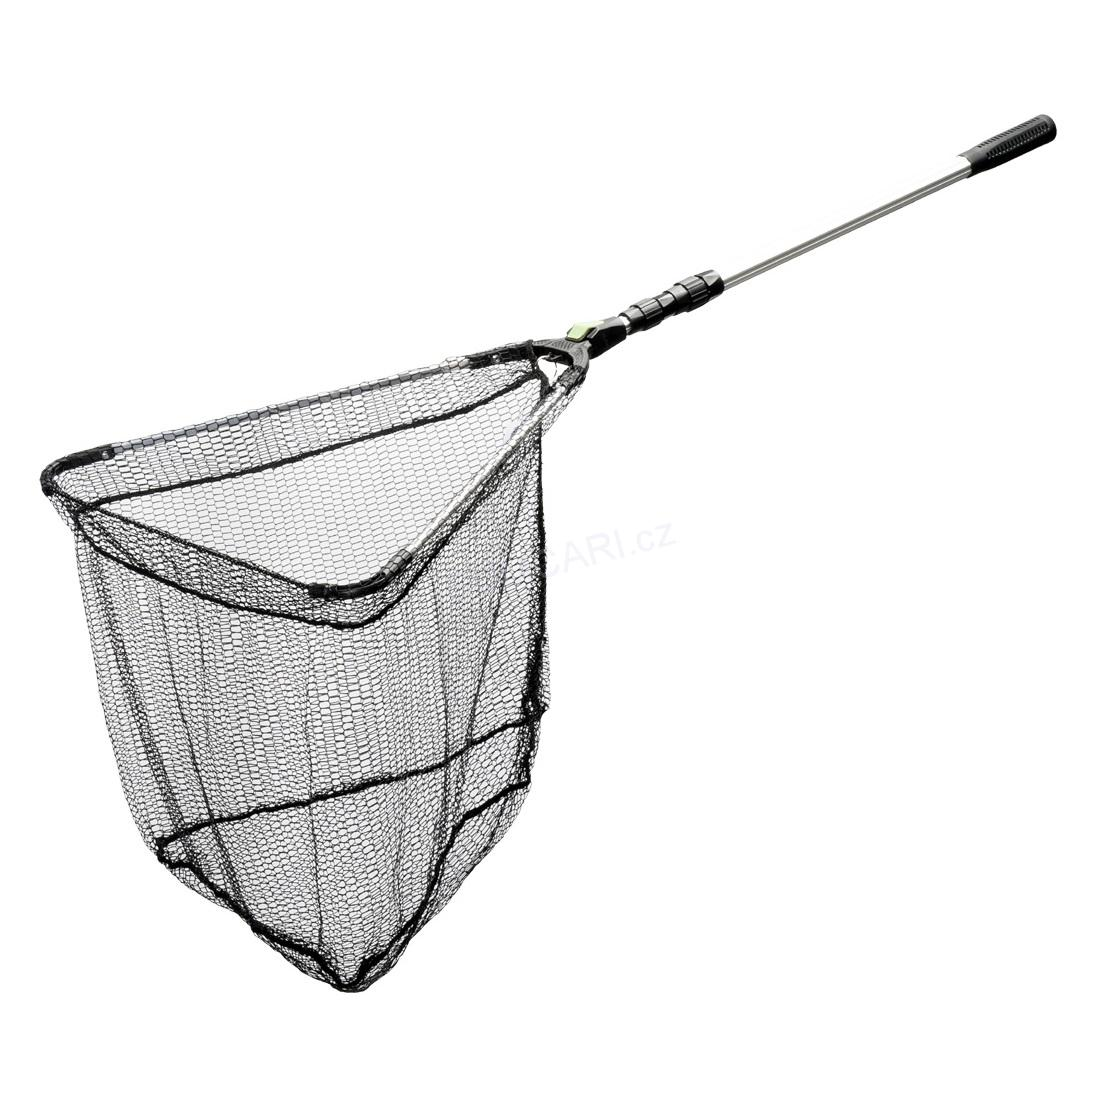 Giants Fishing podběrák Classic Landing Net 2.50m 60x60cm